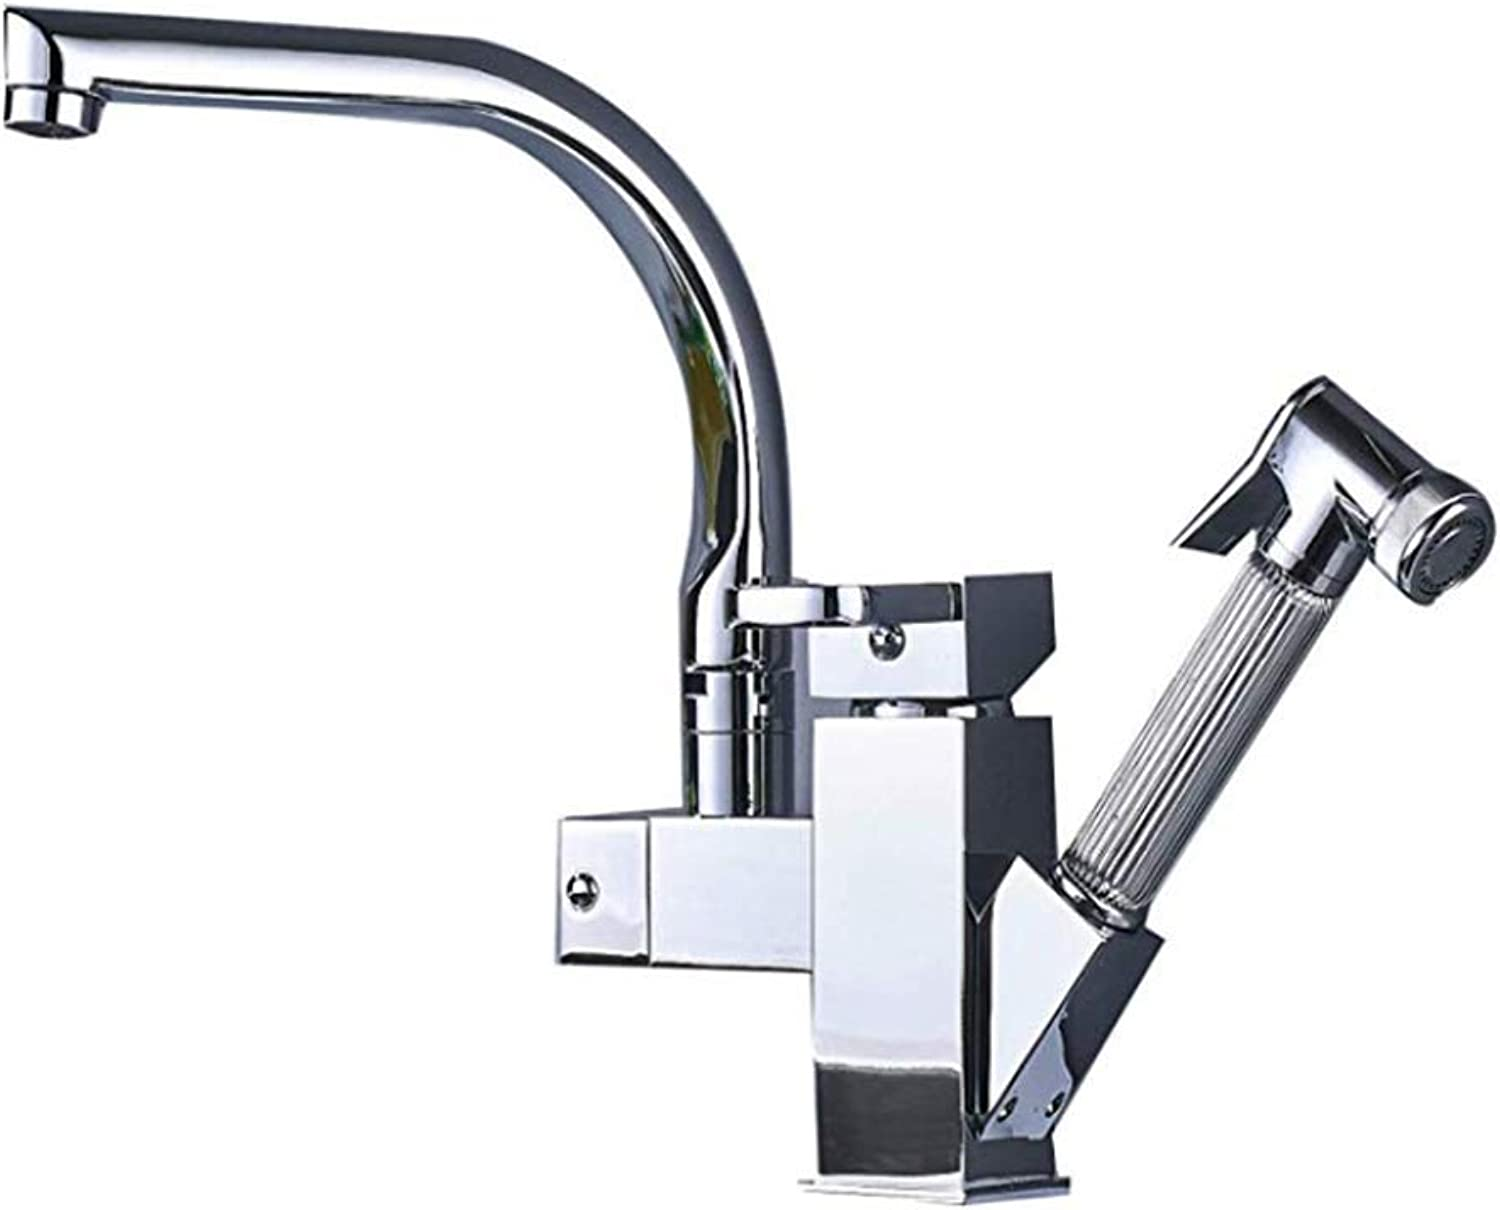 Basin Faucetgood Build Quality Kitchen Sink Mixer Tap,Swivel & Dual Spout Pull Out Bar Taps